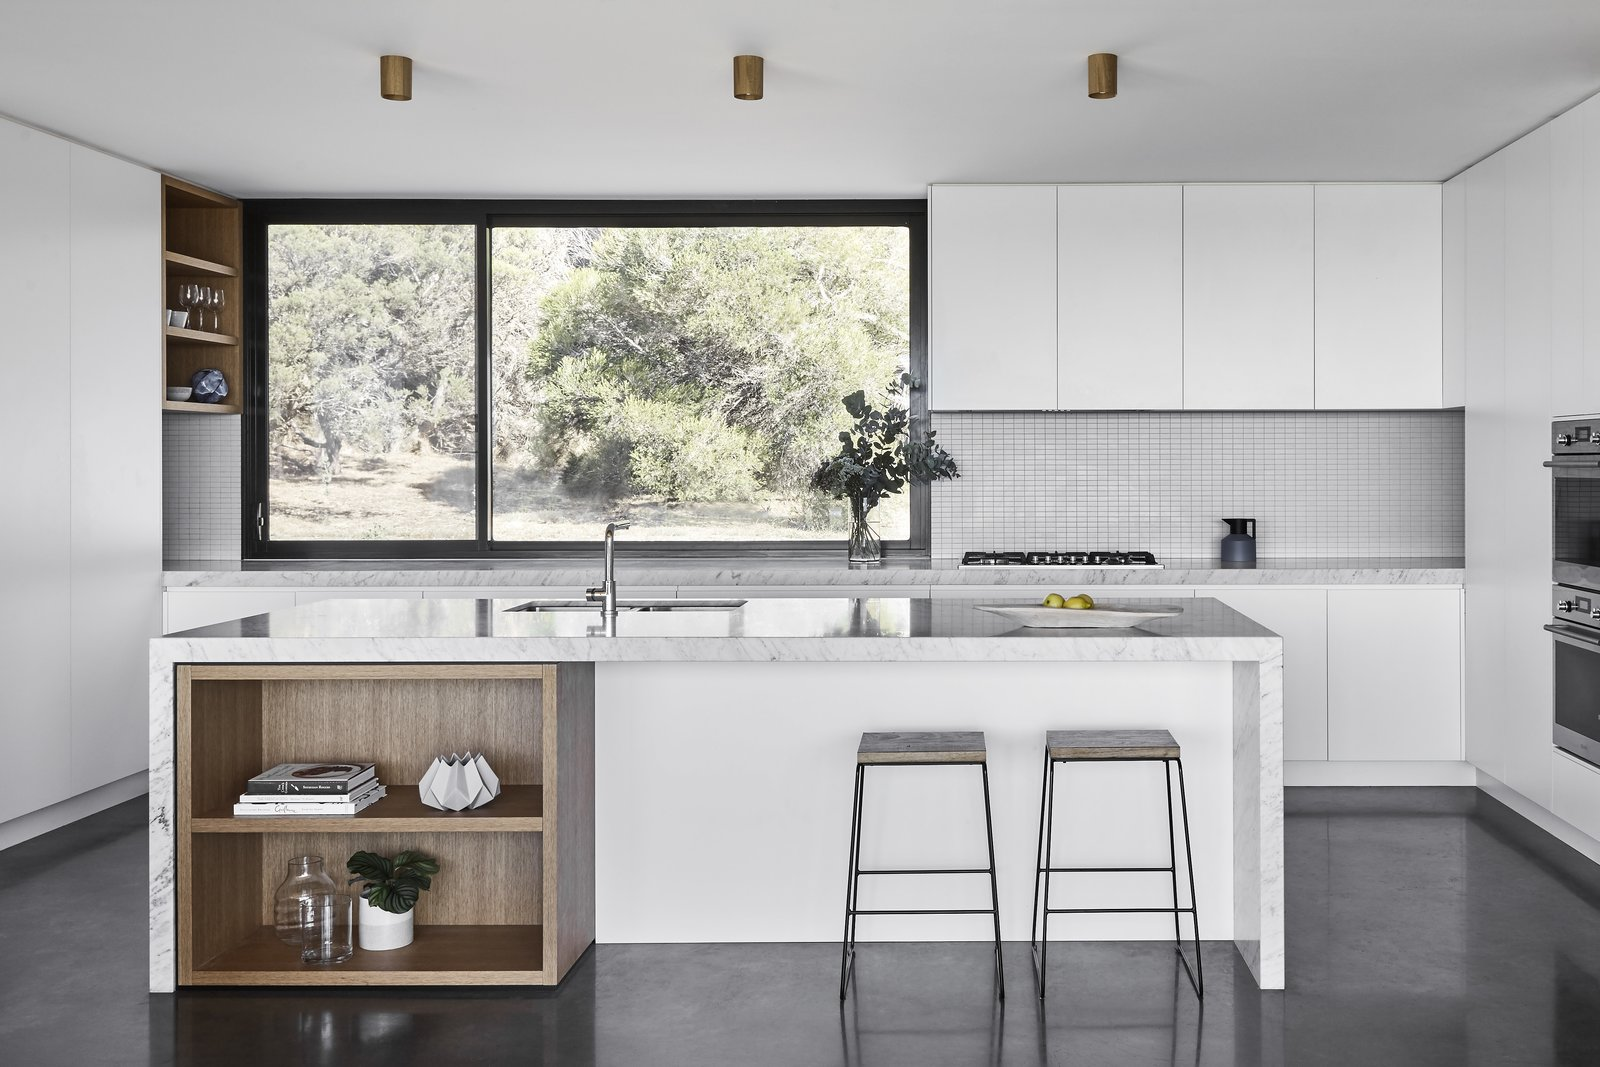 Kitchen, Marble, White, Stone Tile, Wall Oven, Concrete, Cooktops, Ceiling, and Undermount The kitchen features a lovely CDK stone backsplash.    Kitchen Cooktops Undermount Wall Oven Marble White Photos from Two Timber-Clad Pavilions Make Up This Australian Family Retreat